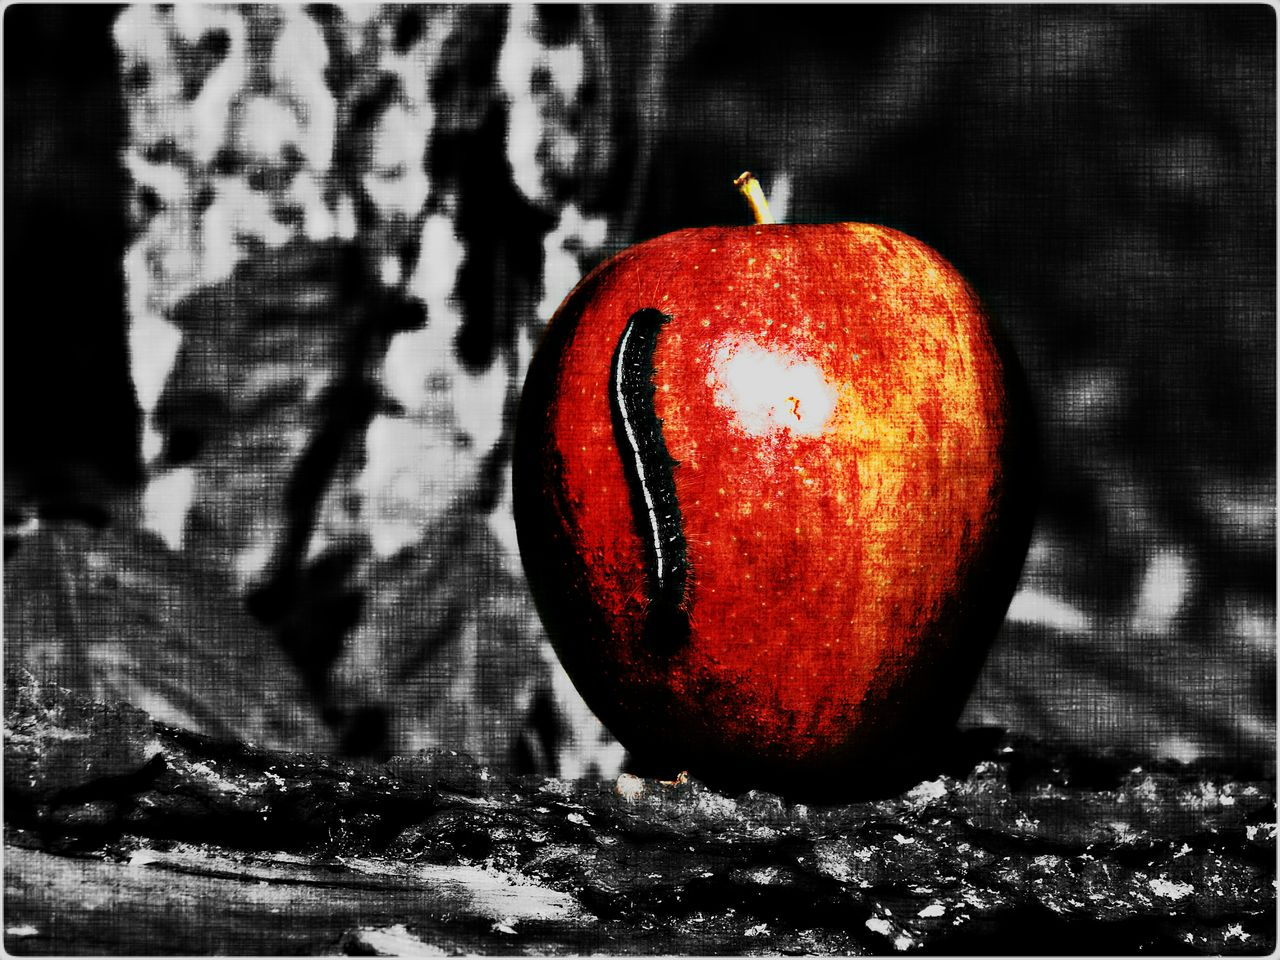 An Apple A Day Original Photography Apple Caterpillar Wall Art Color Splash Drawn Edit Eyem Gallery Fruit Photo CollectionApple a Day Photo Collection - Drawn Edit, Apple with Caterpillar